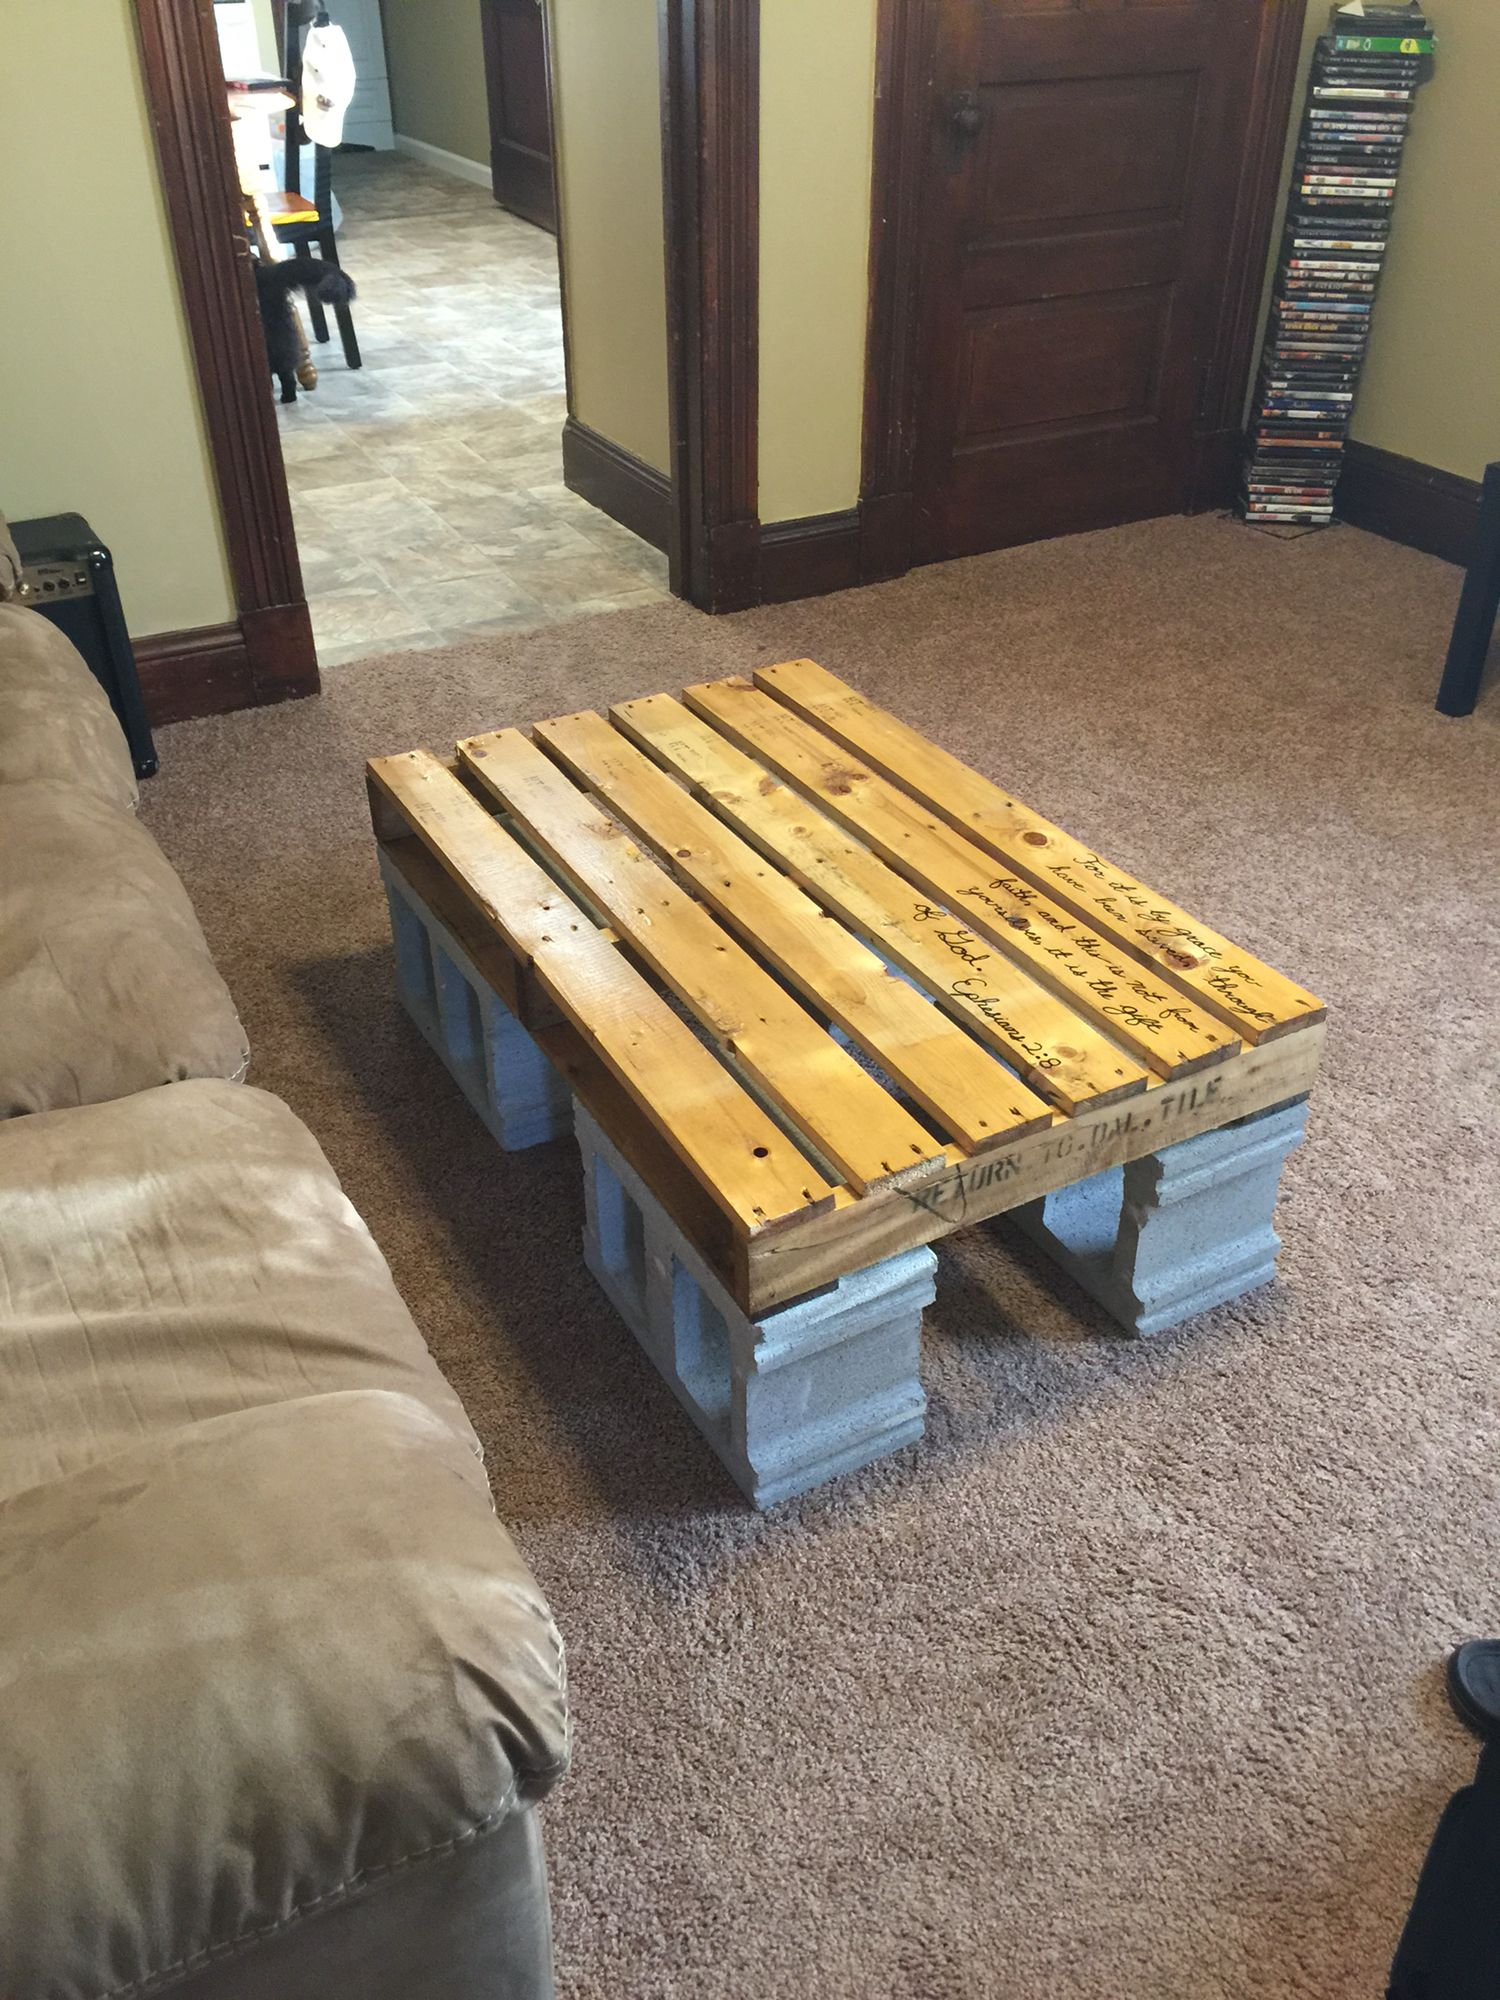 Diy patio furniture cinder blocks - Pallet And Cinder Block Coffee Table